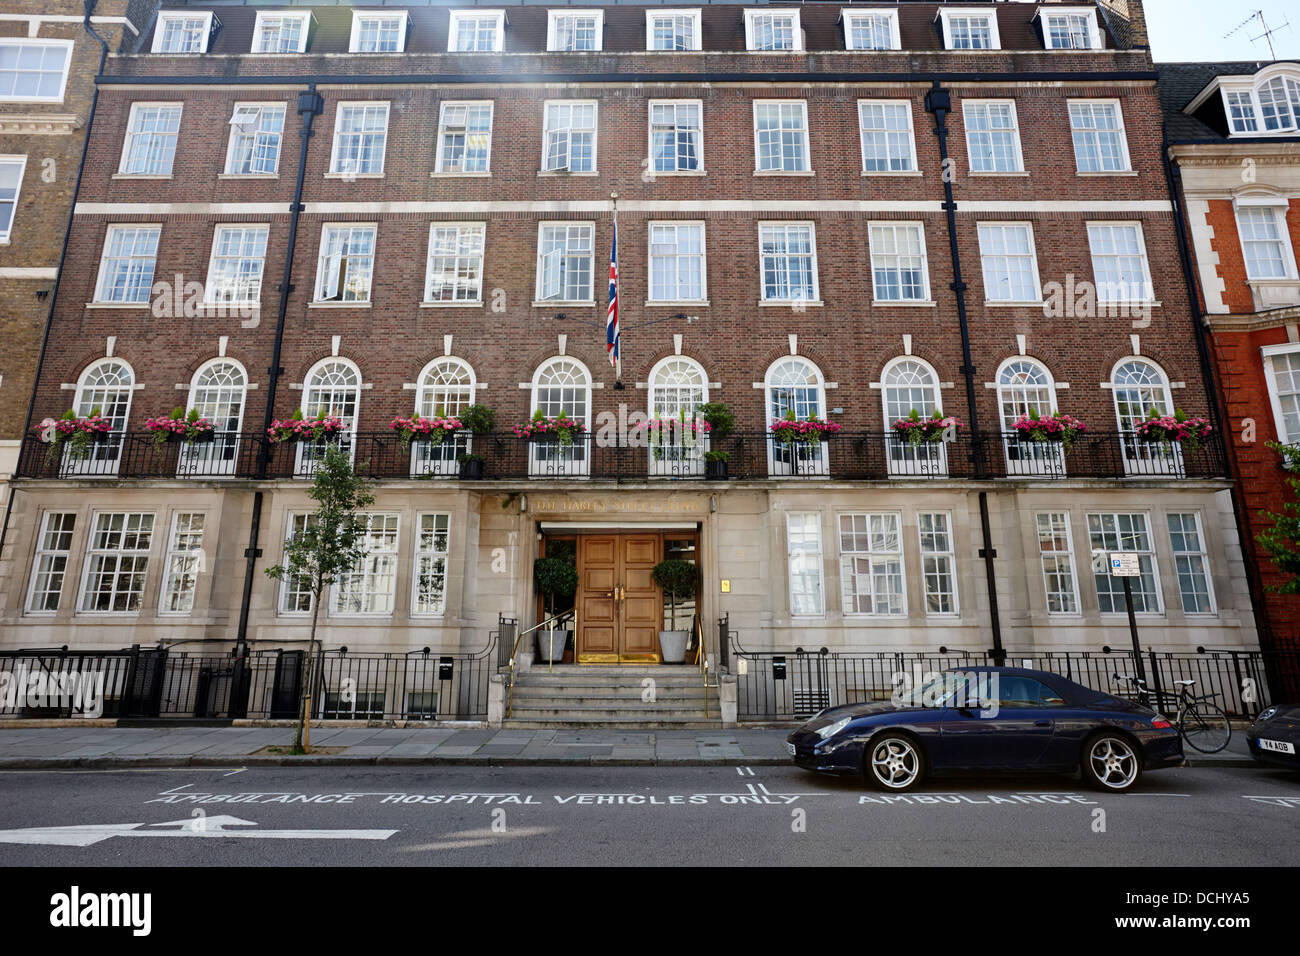 the harley street clinic private hospital London England UK - Stock Image